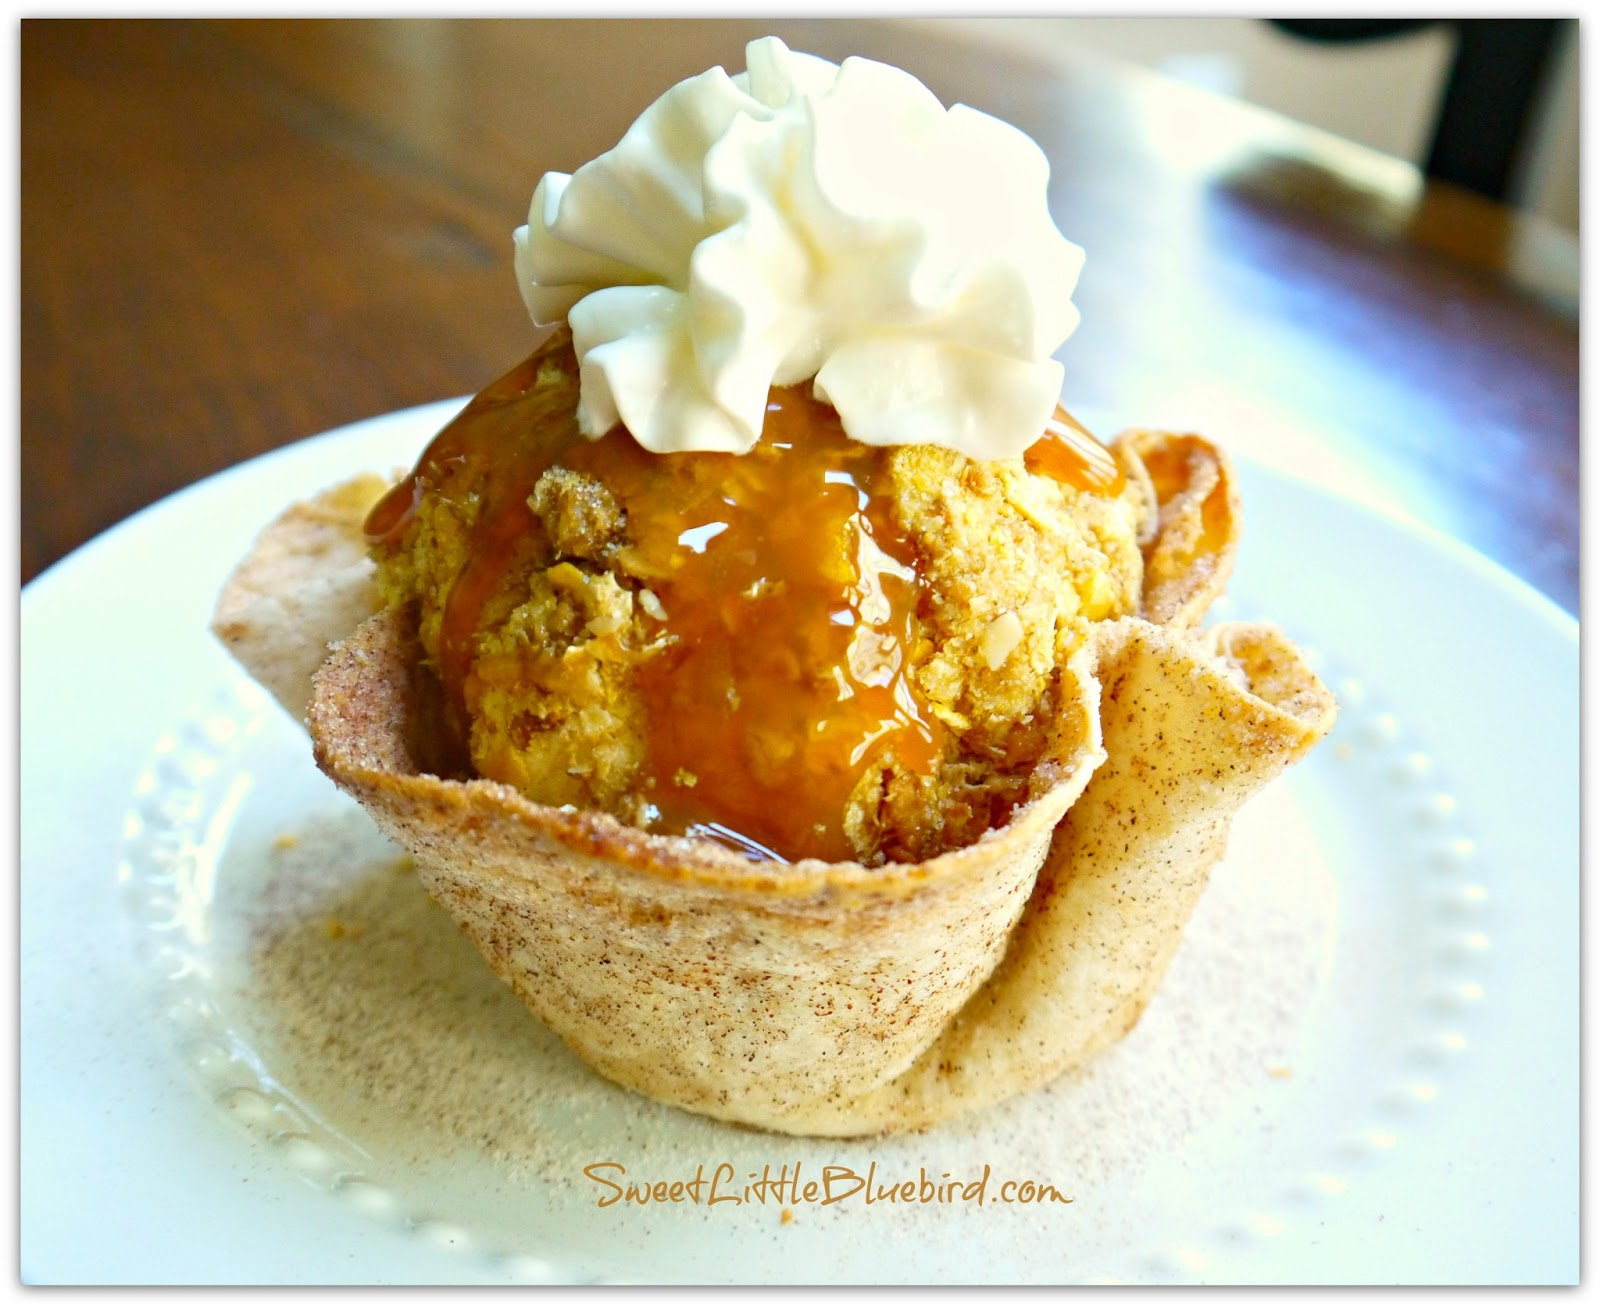 Cheater Fried Ice Cream! No frying! Simple to make! Oh so good